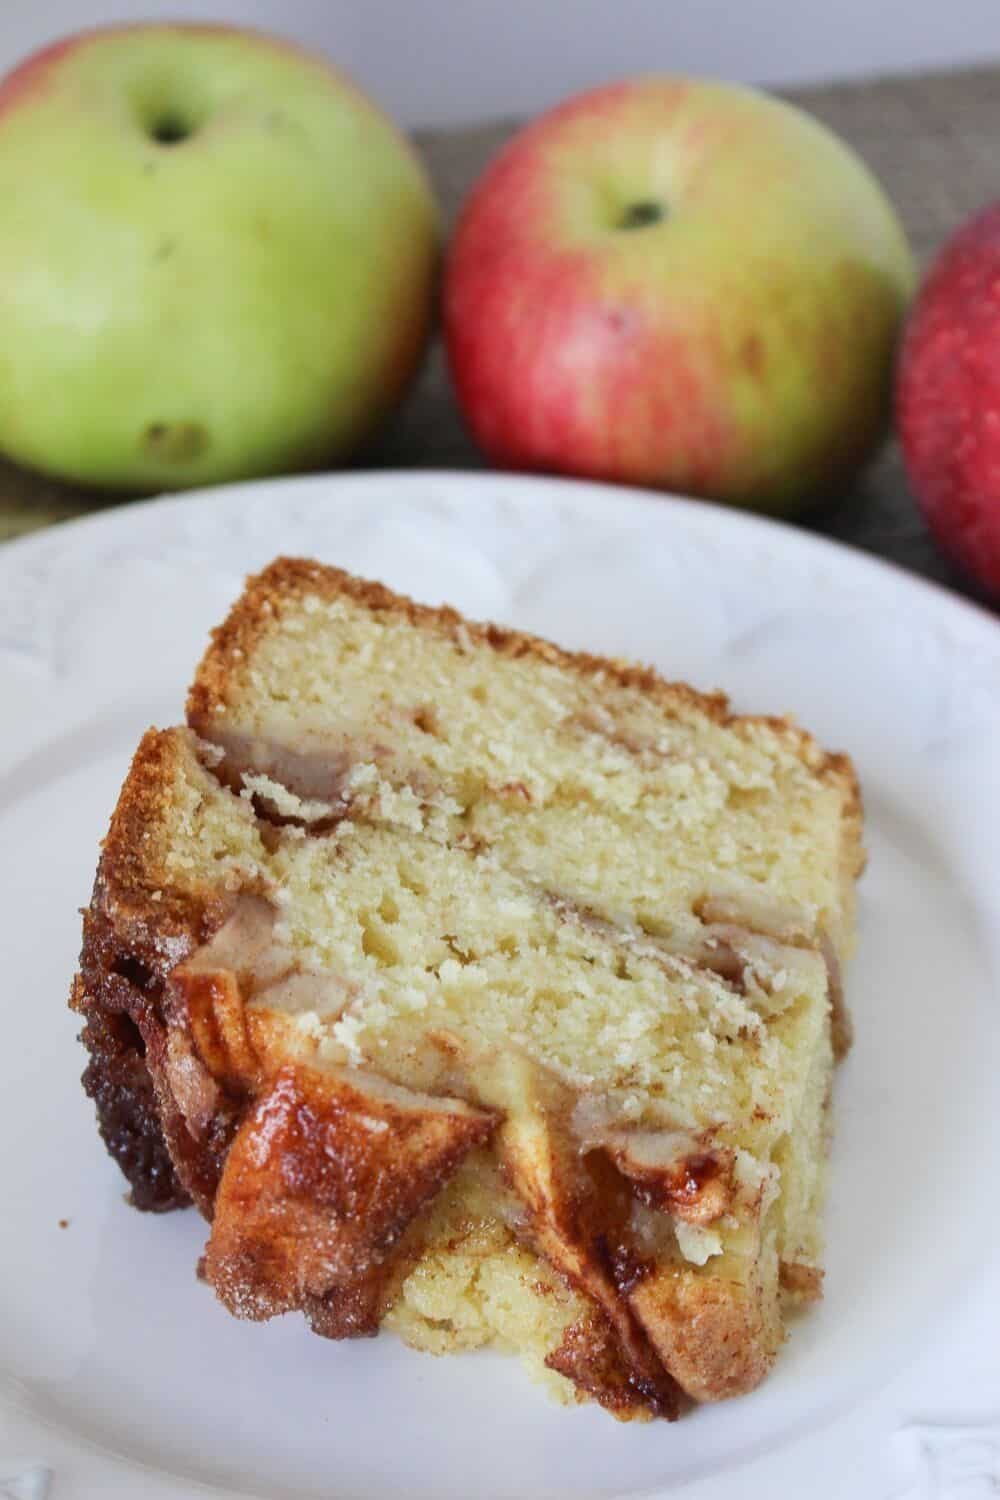 This Jewish Apple Cake recipe is moist and packed with sweet apples and cinnamon. It features a crunchy apple cinnamon topping Be sure to grab a slice before it's all gone. #jewishapplecake #applecake #applerecipe